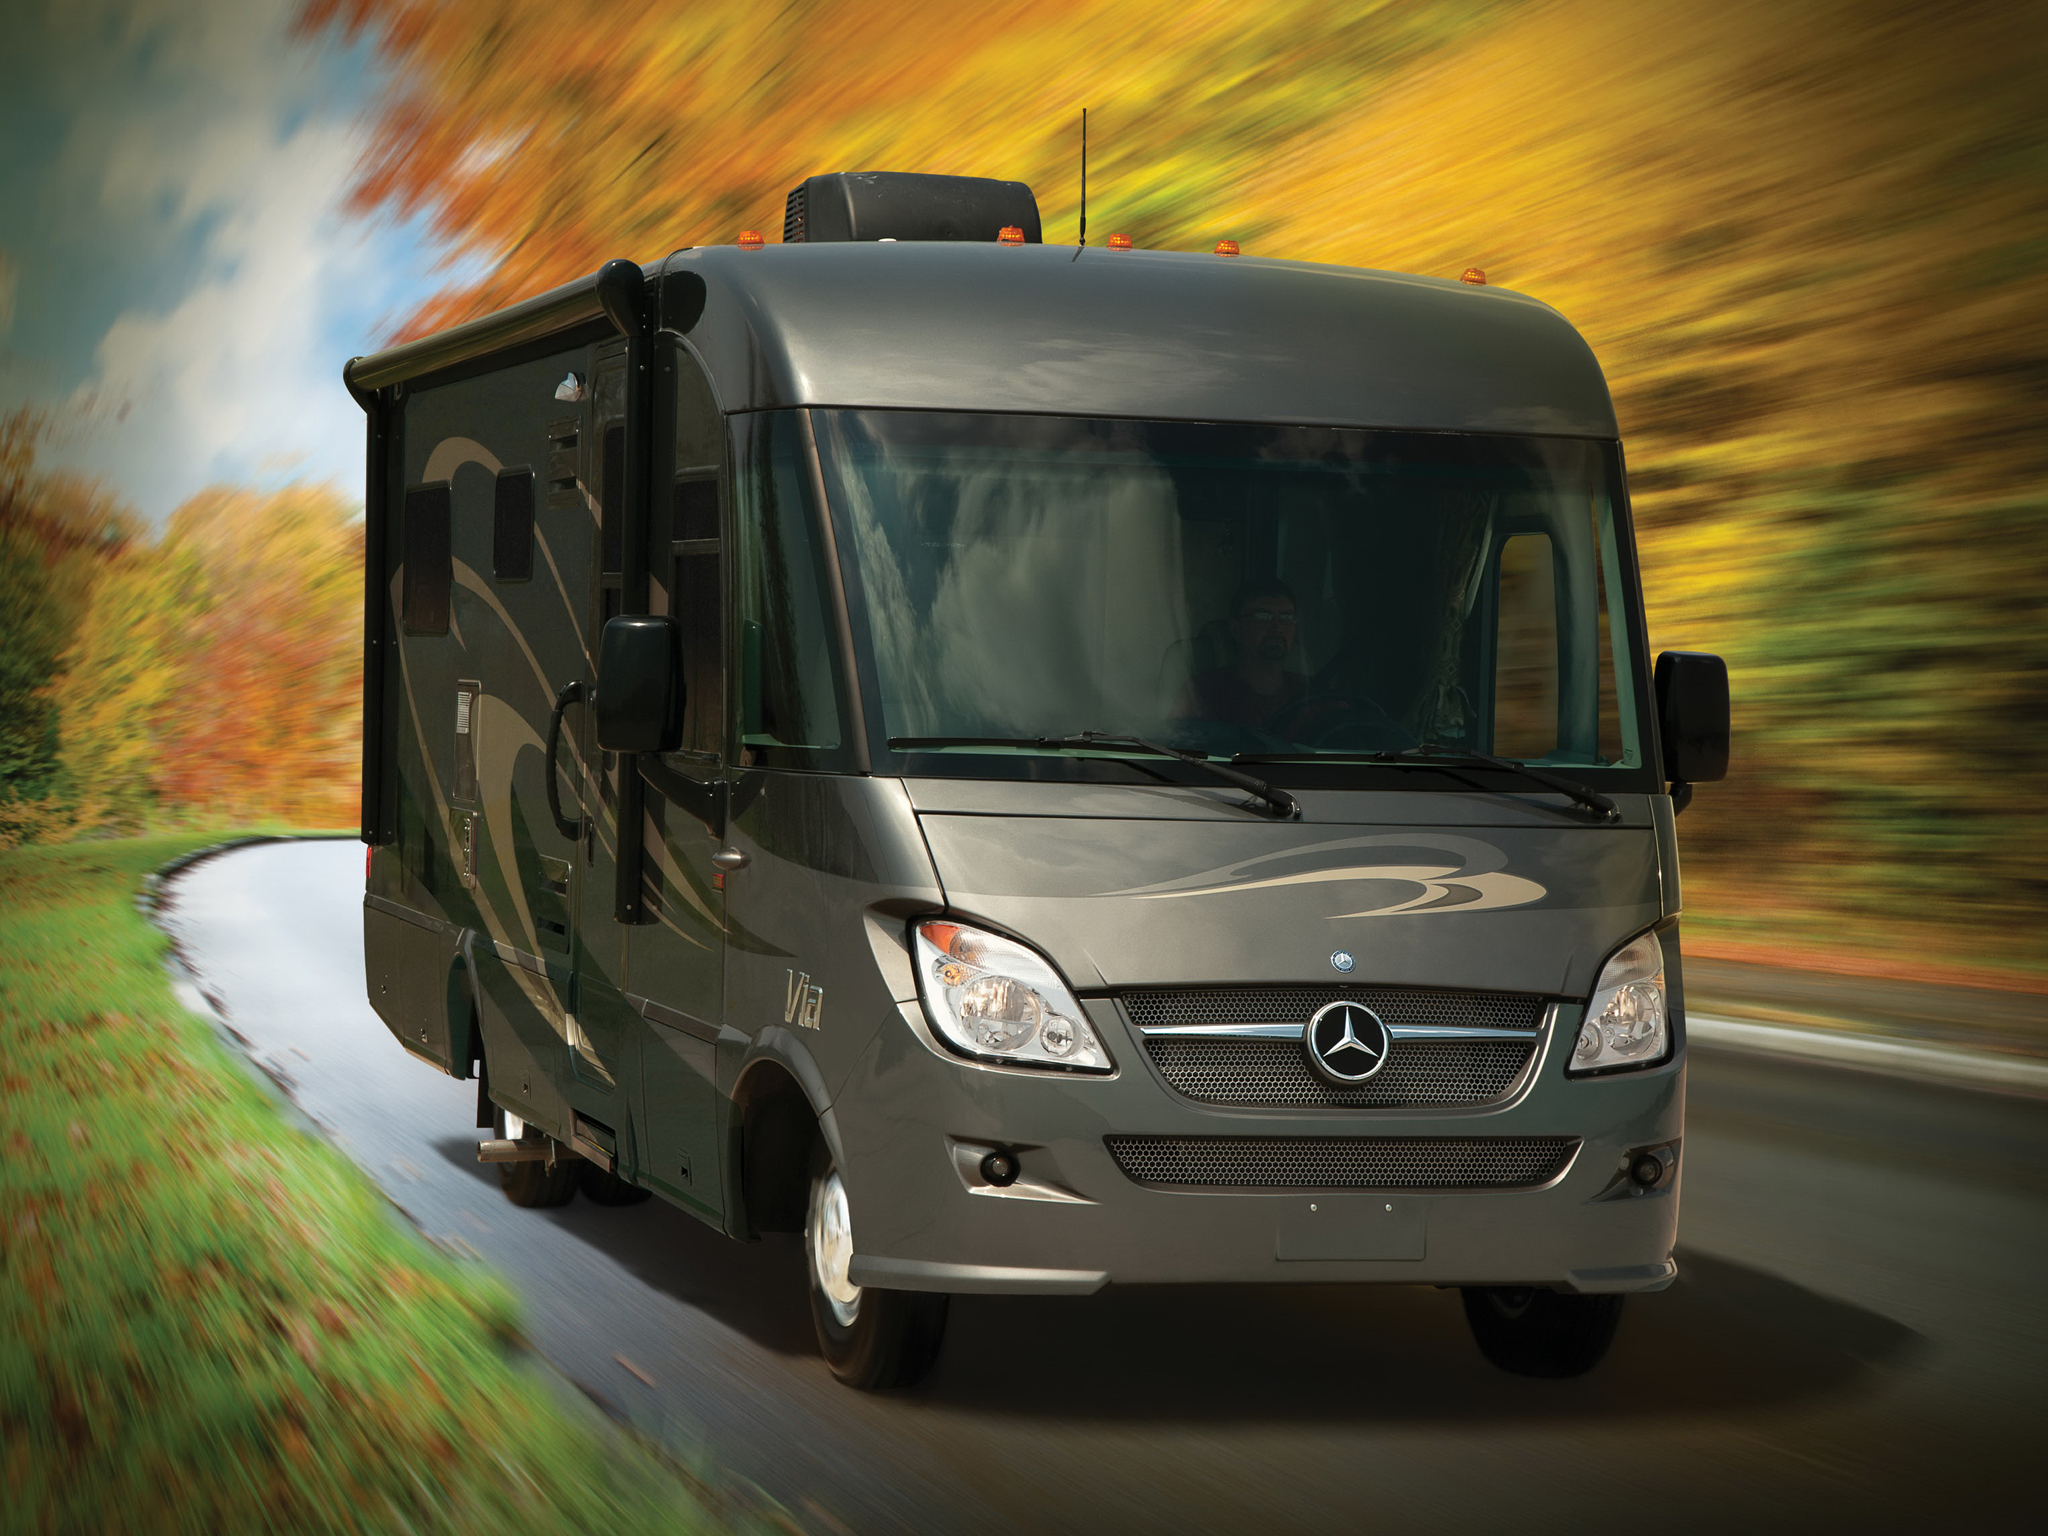 Wallpaper For Motorhomes